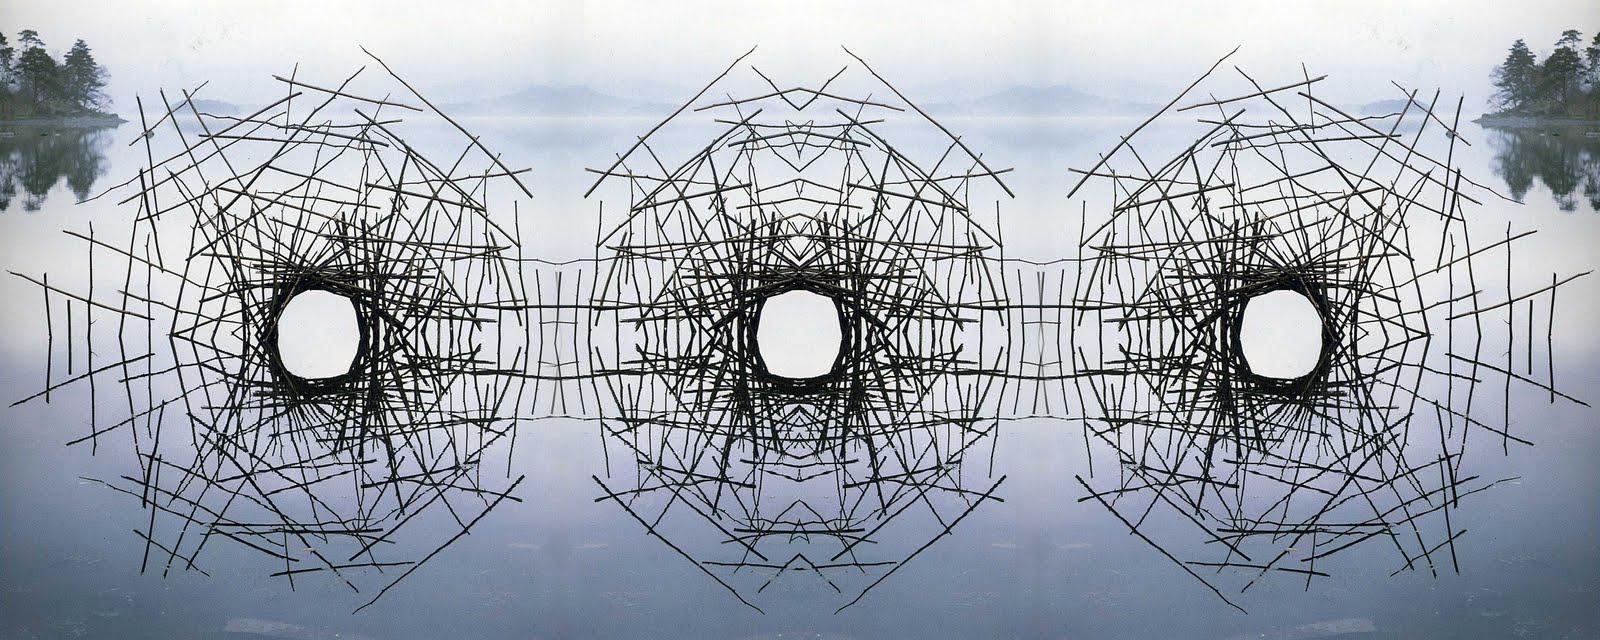 A sculpture by Andy Goldsworthy, arranged sticks reflecting in the water.